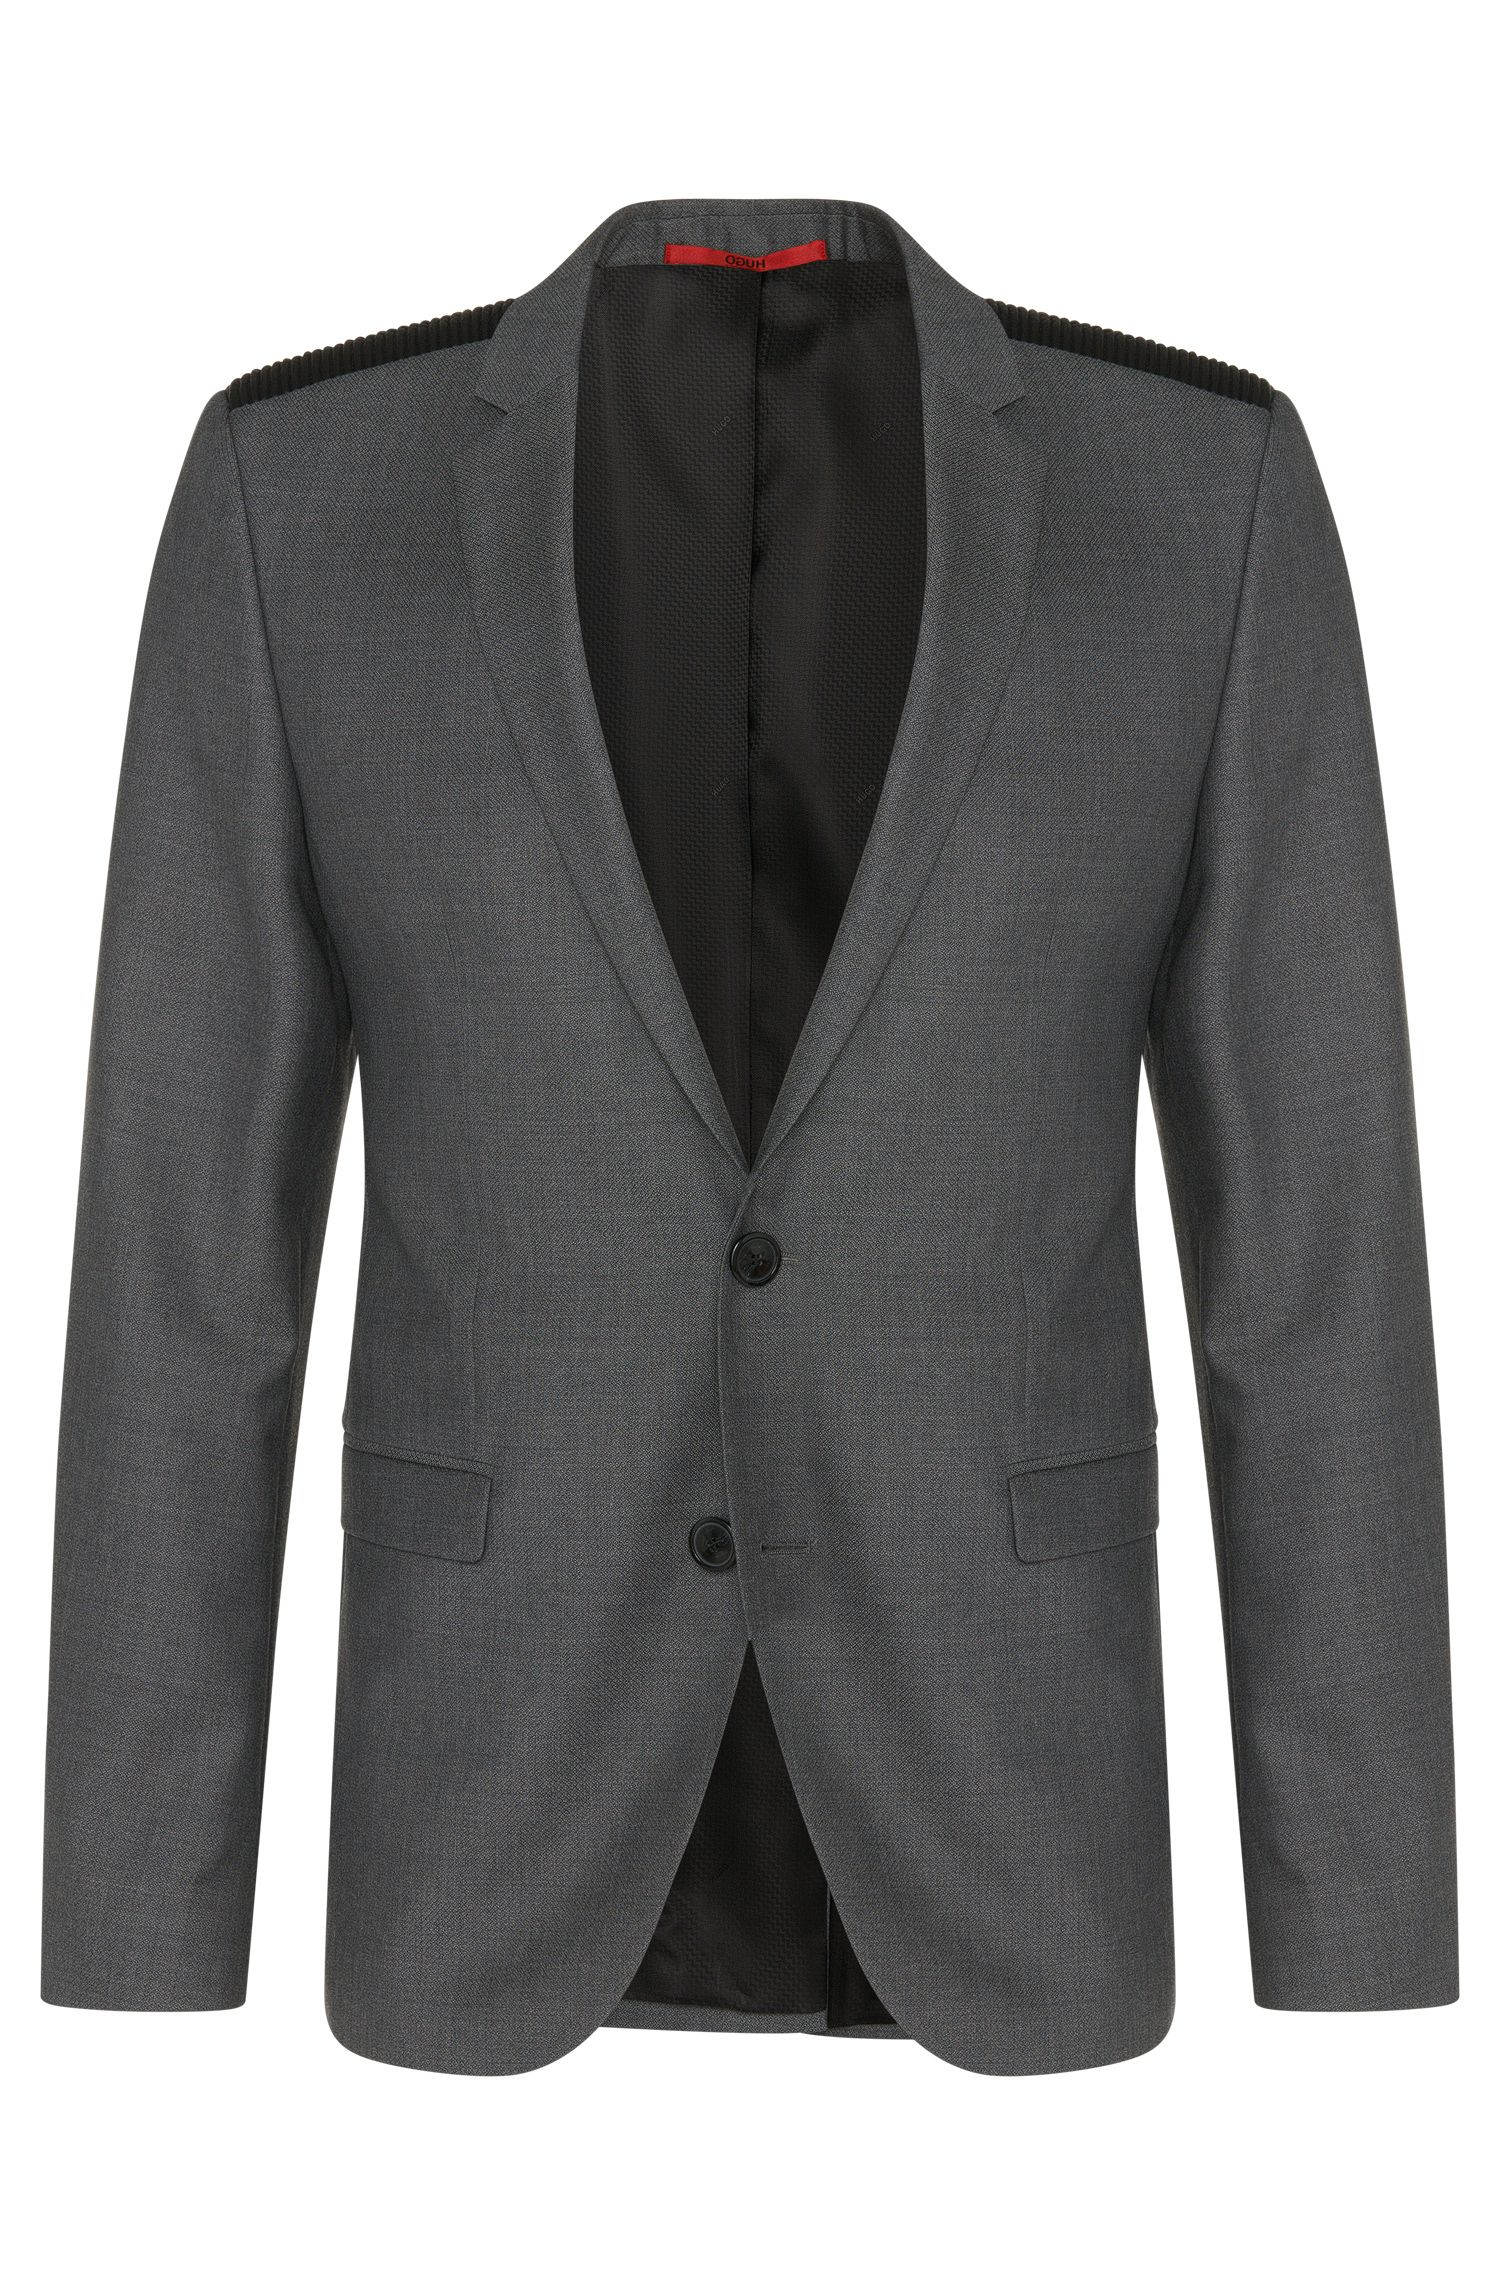 'Andson' | Extra Slim Fit, Virgin Wool Vegan-Leather Shoulder Sport Coat